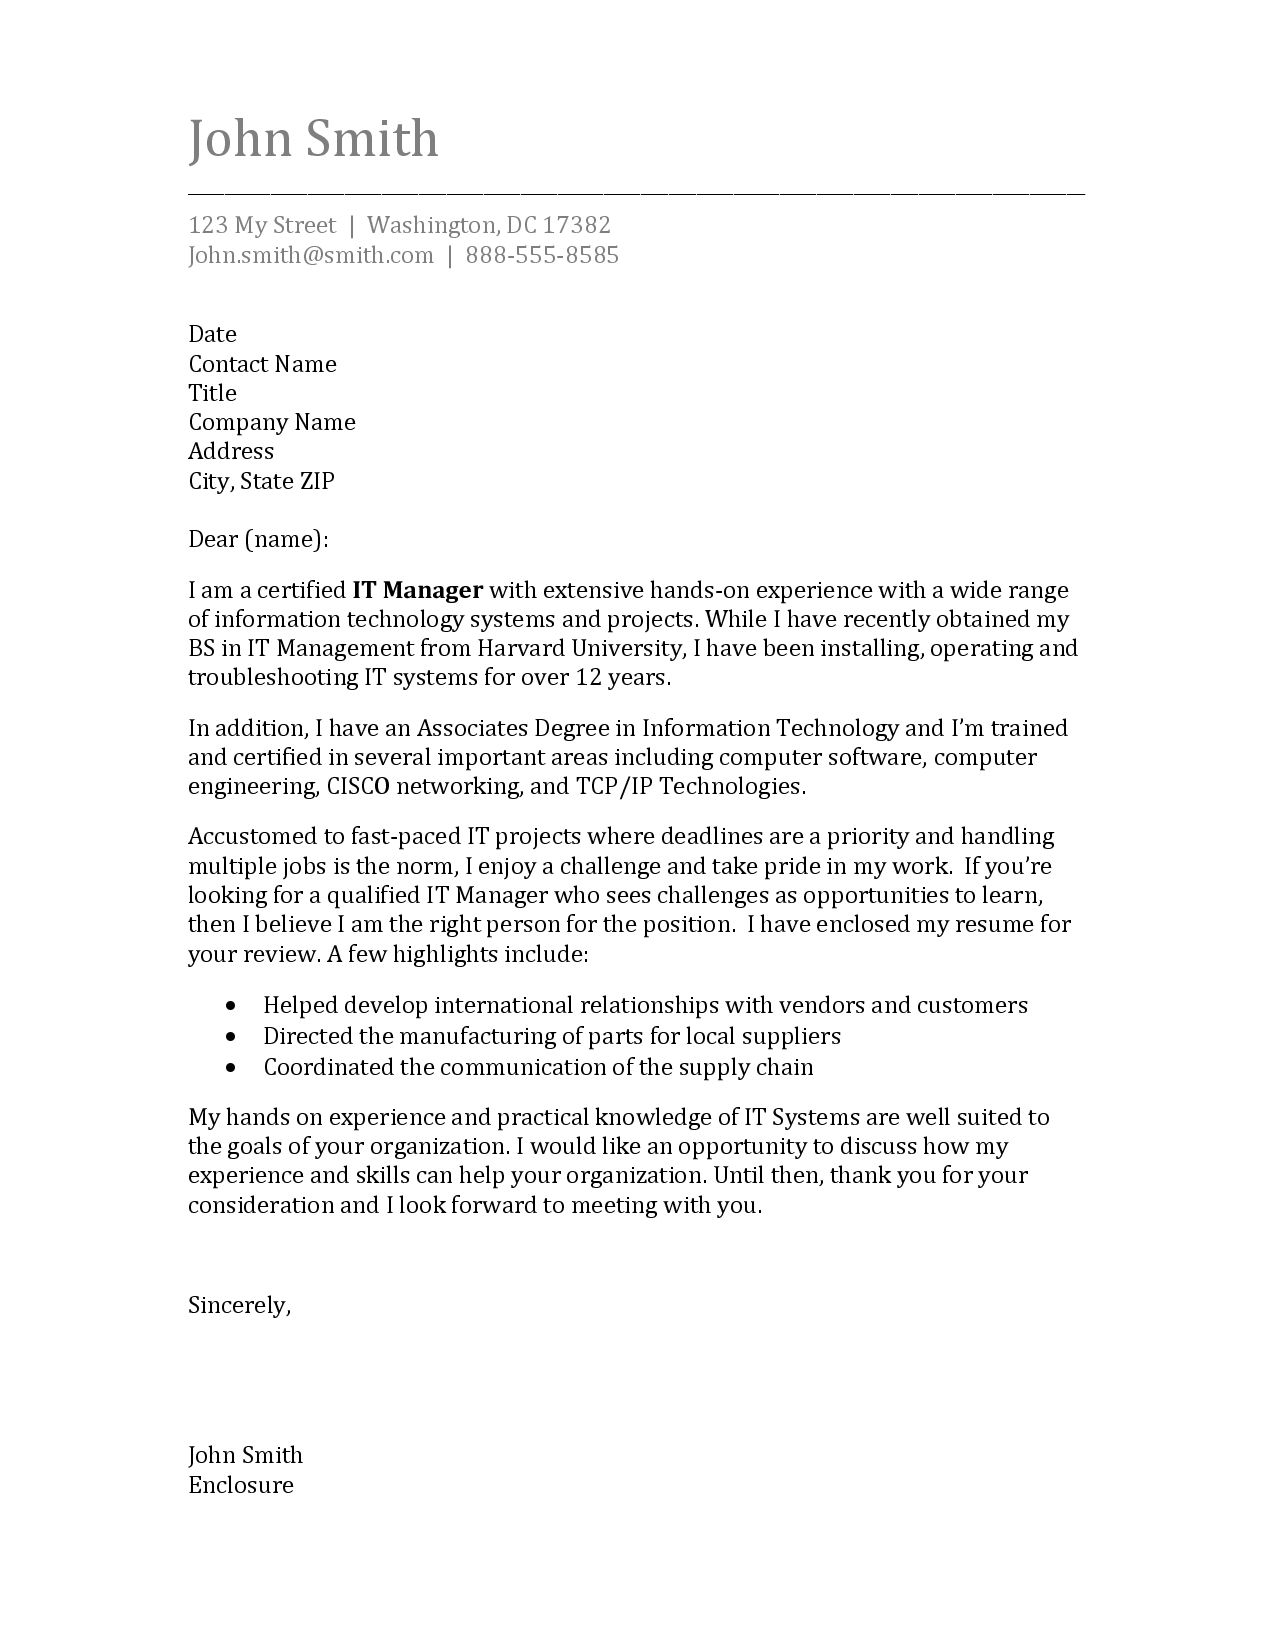 Cover Letter Template Science , cover